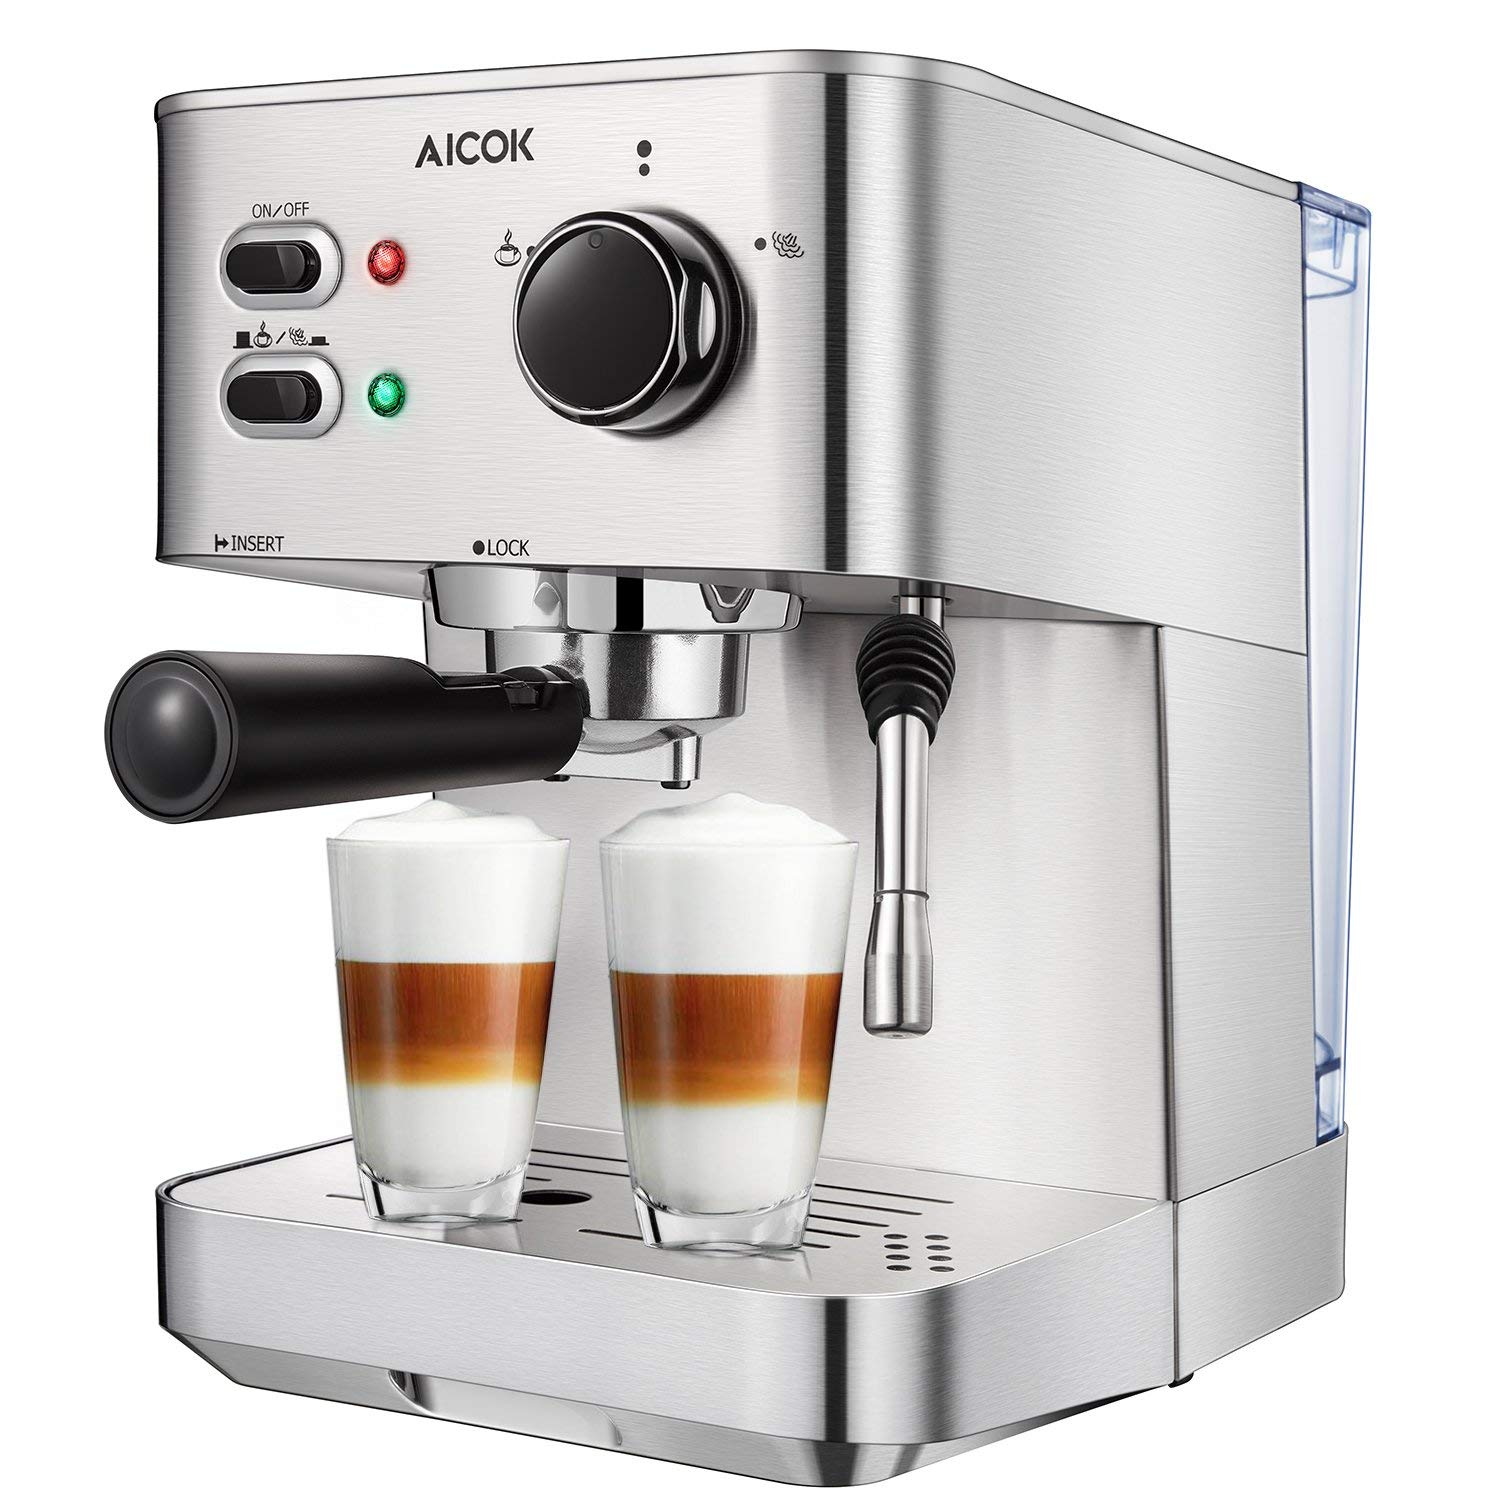 Espresso Machine, Cappuccino Coffee Maker with Milk Steamer Frother, 15 Bar Pump Latte and Moka Machine, Stainless Steel, Warm Top for Cup Placing, 1050W, by AICOK by AICOK